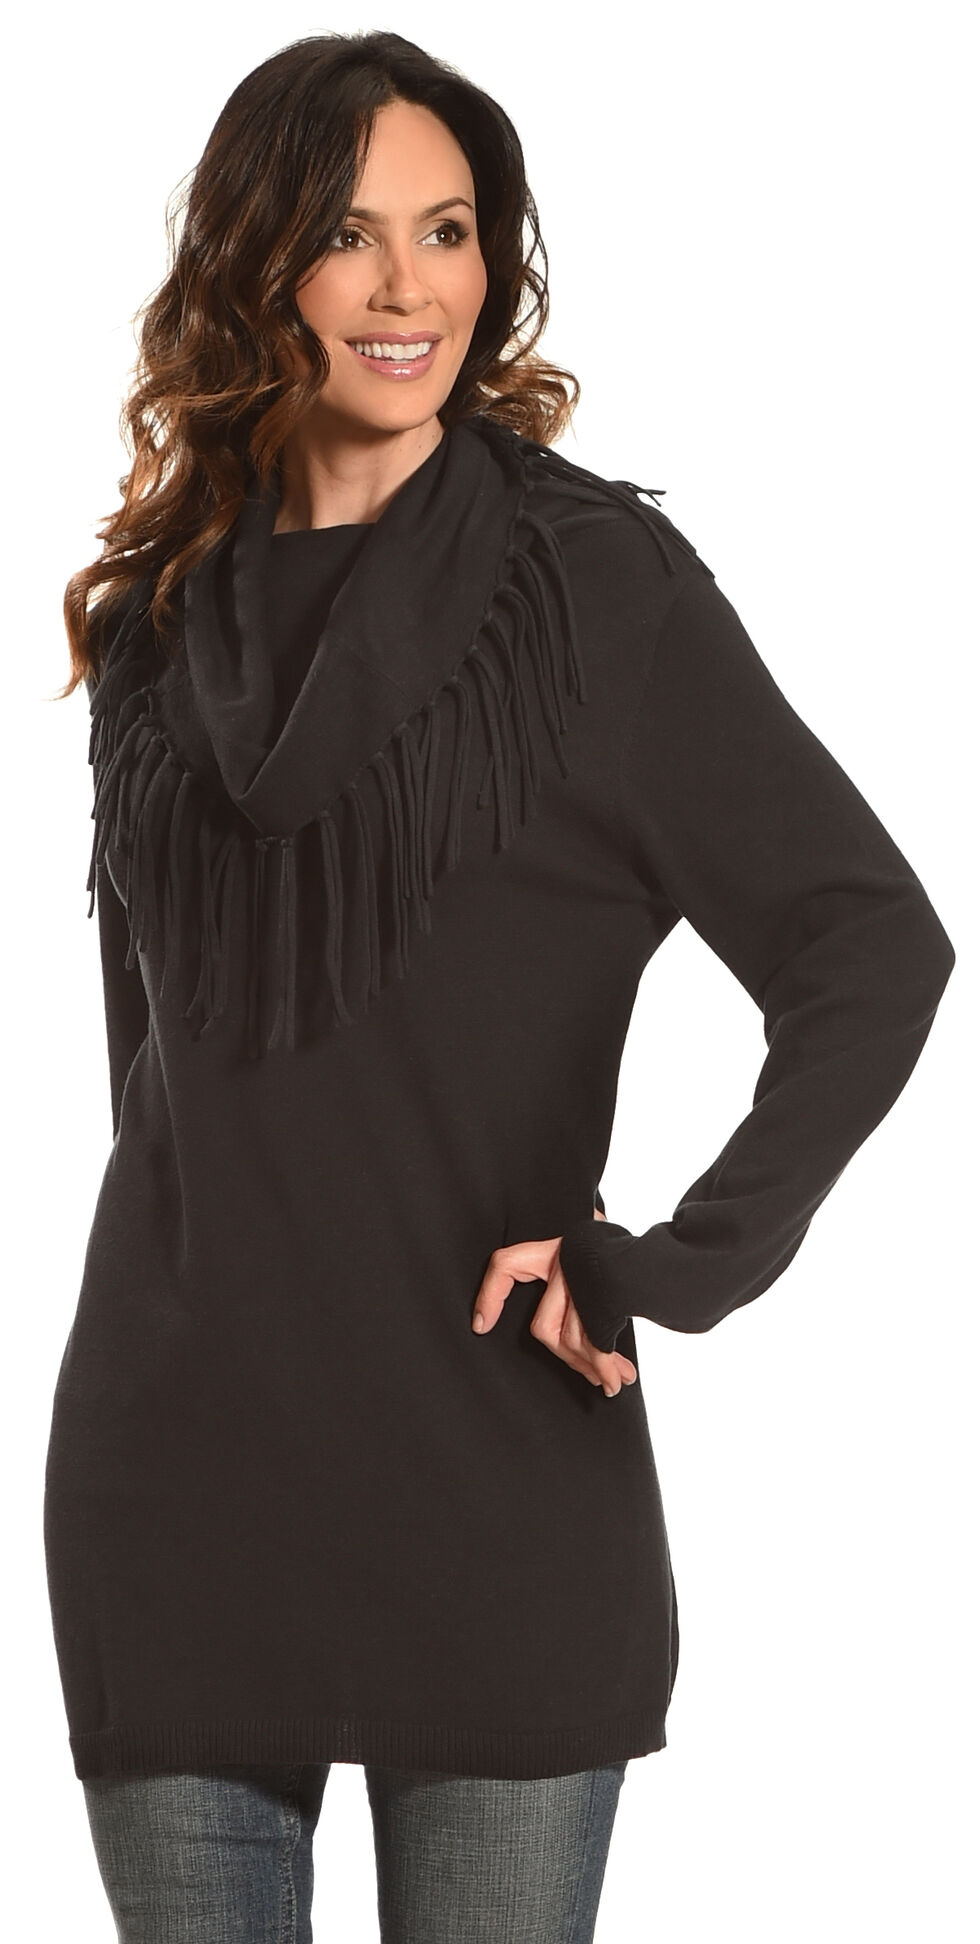 Tasha Polizzi Women's Thoroughbred Tunic, , hi-res